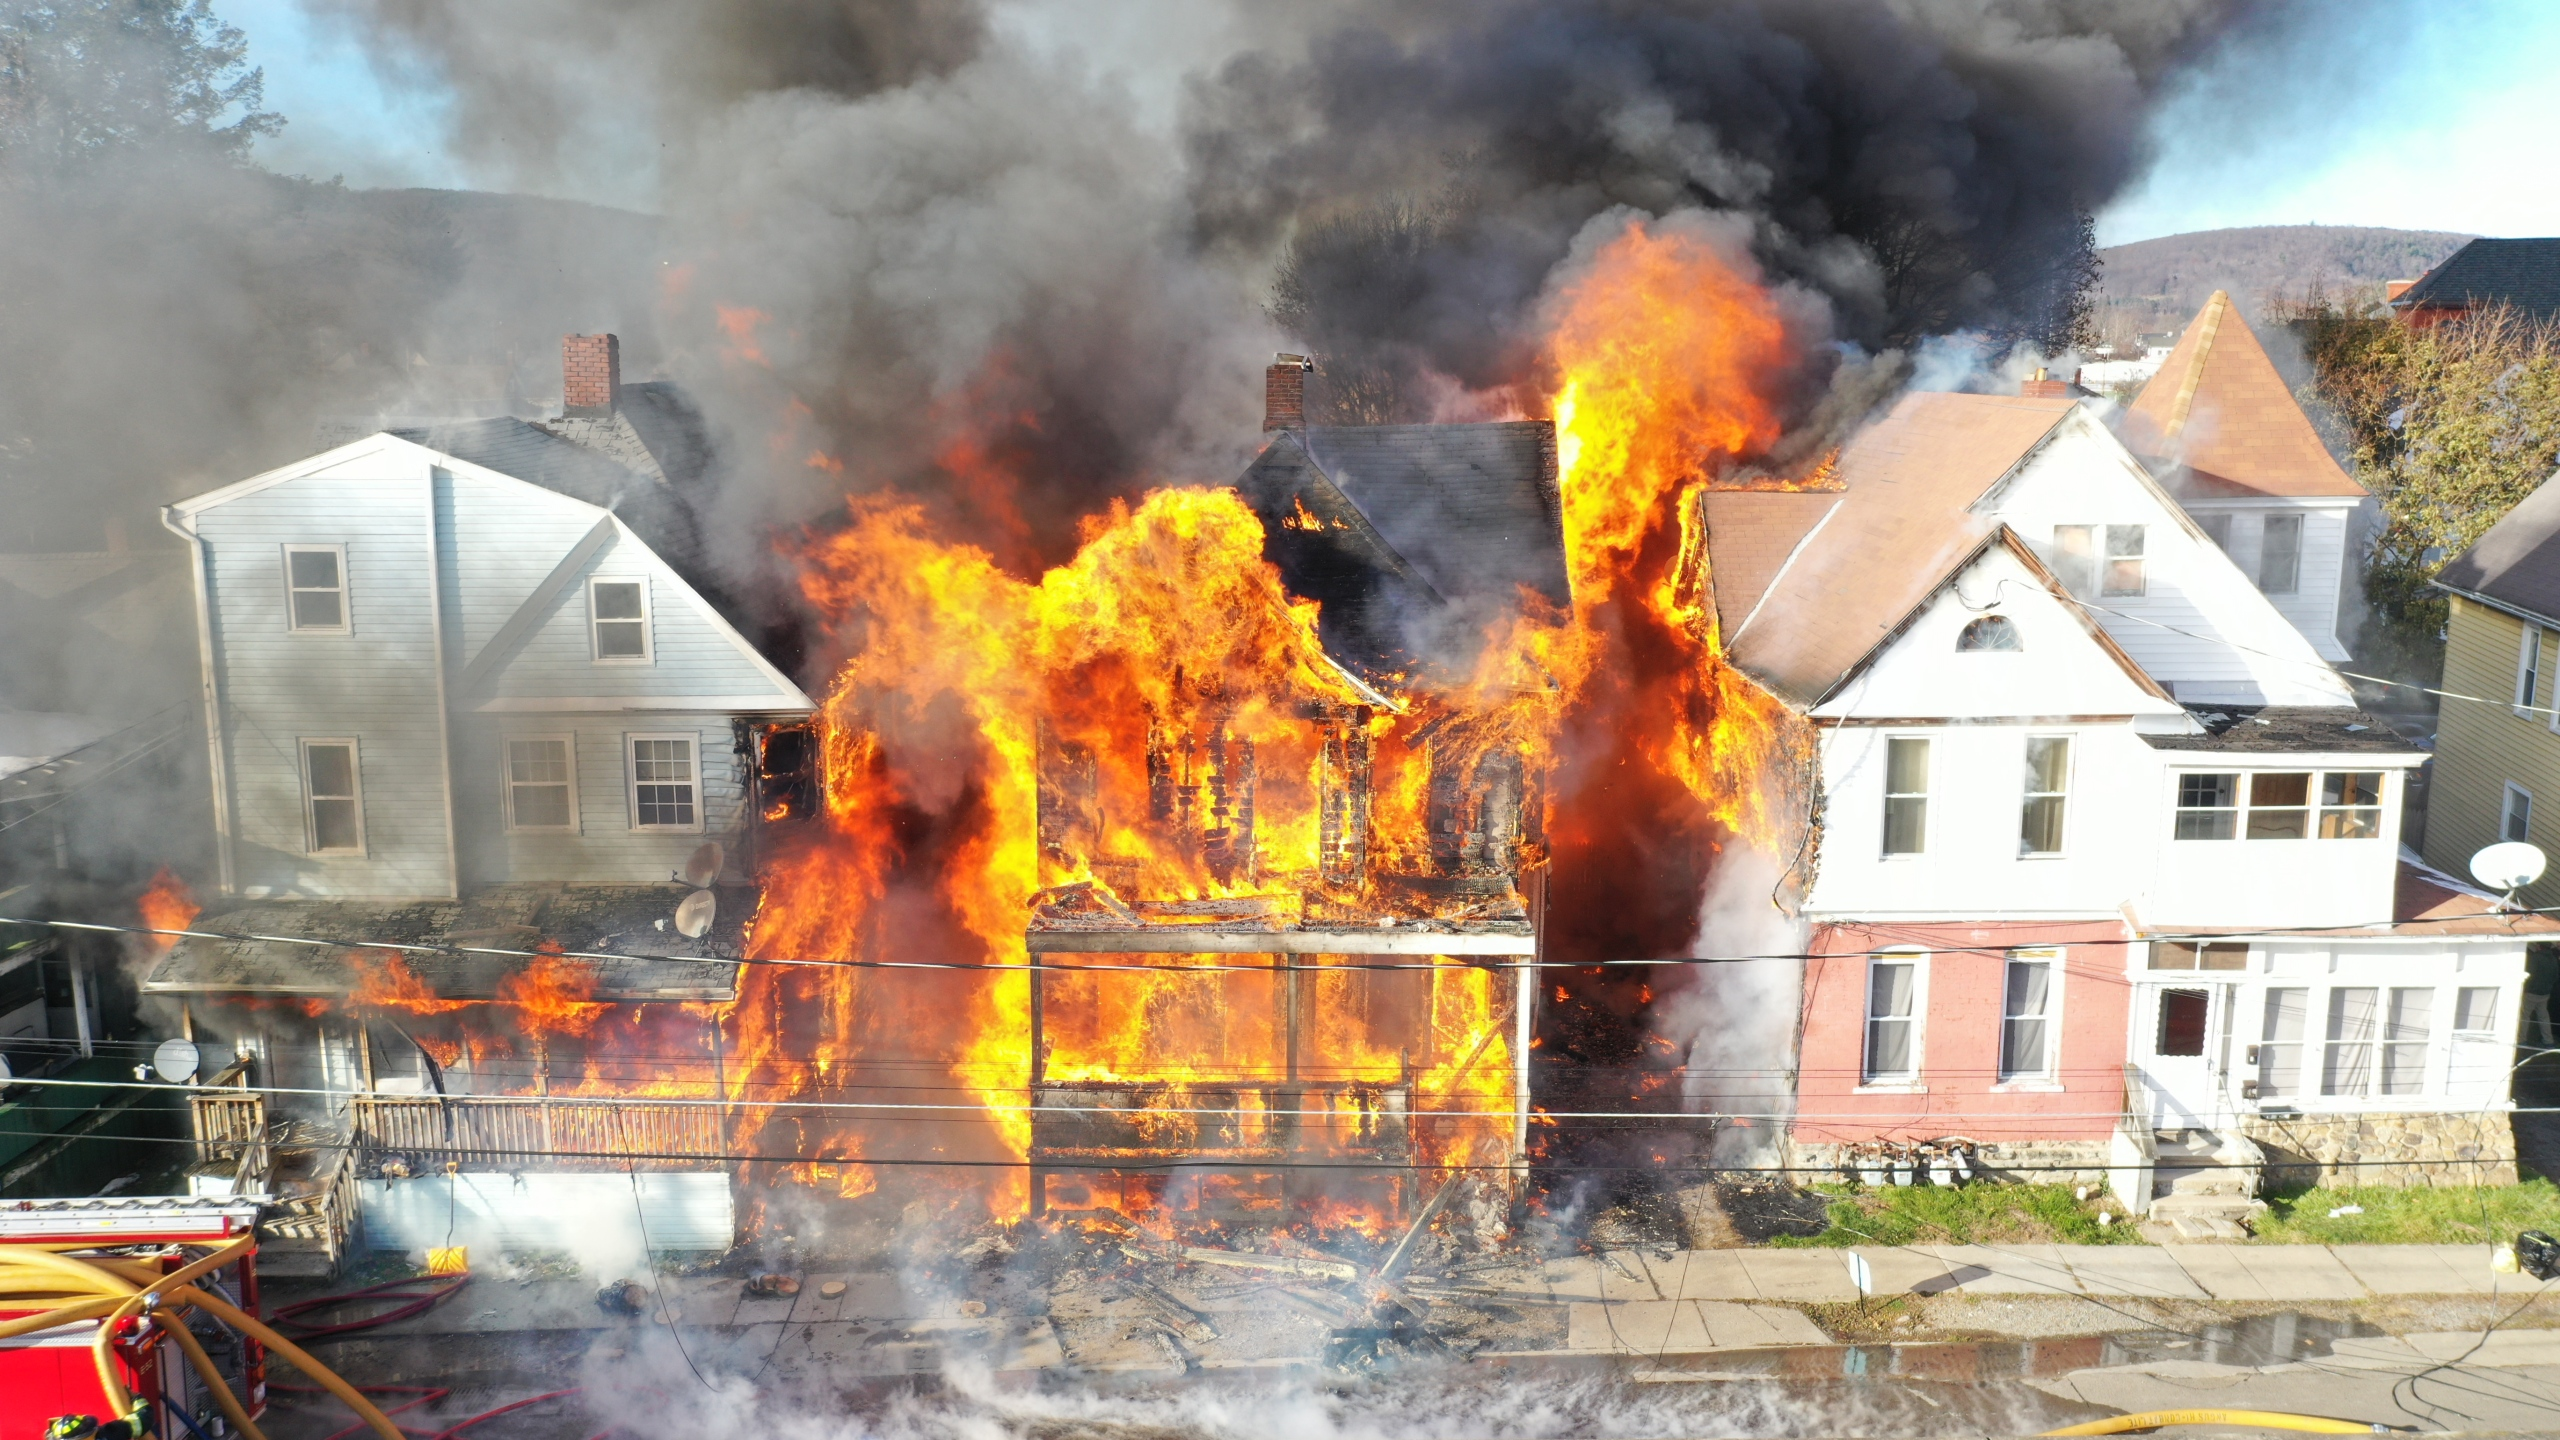 Massive fire in Hornell leaves 13 adults, 8 children without a home; altogether 7 homes damaged